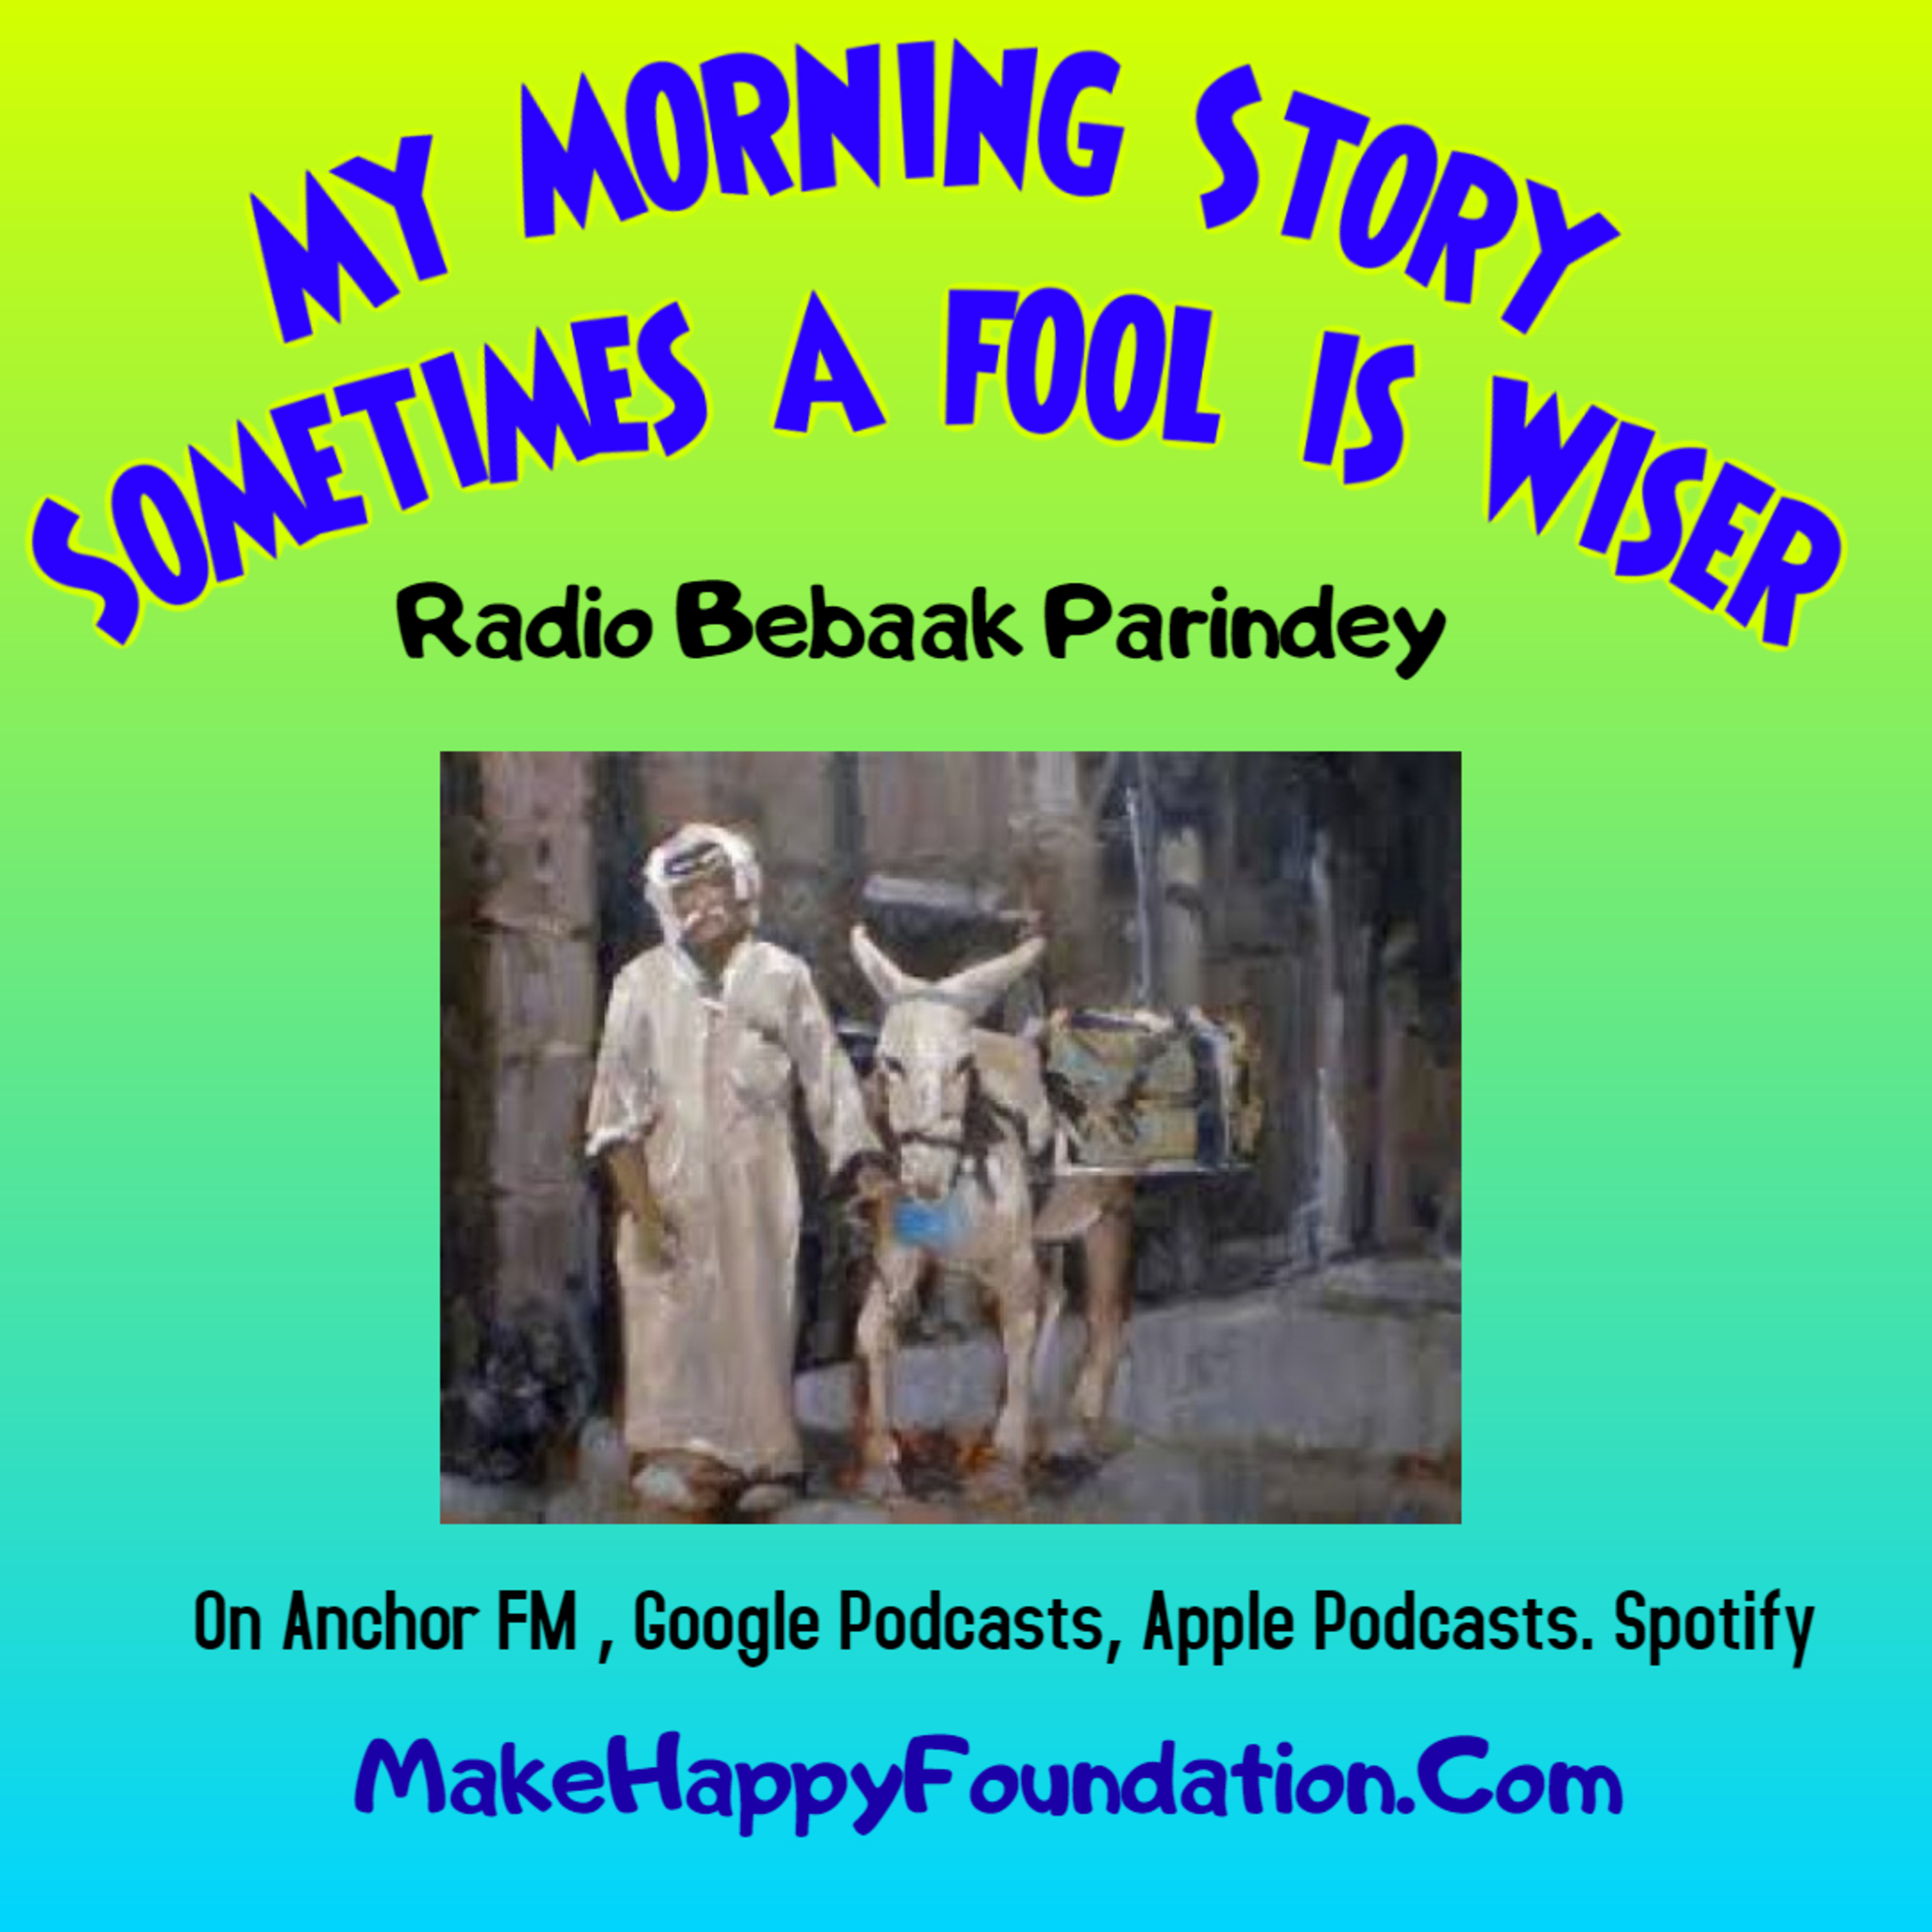 Sometimes a Fool is wiser , My Morning story on Radio Bebaak Parindey